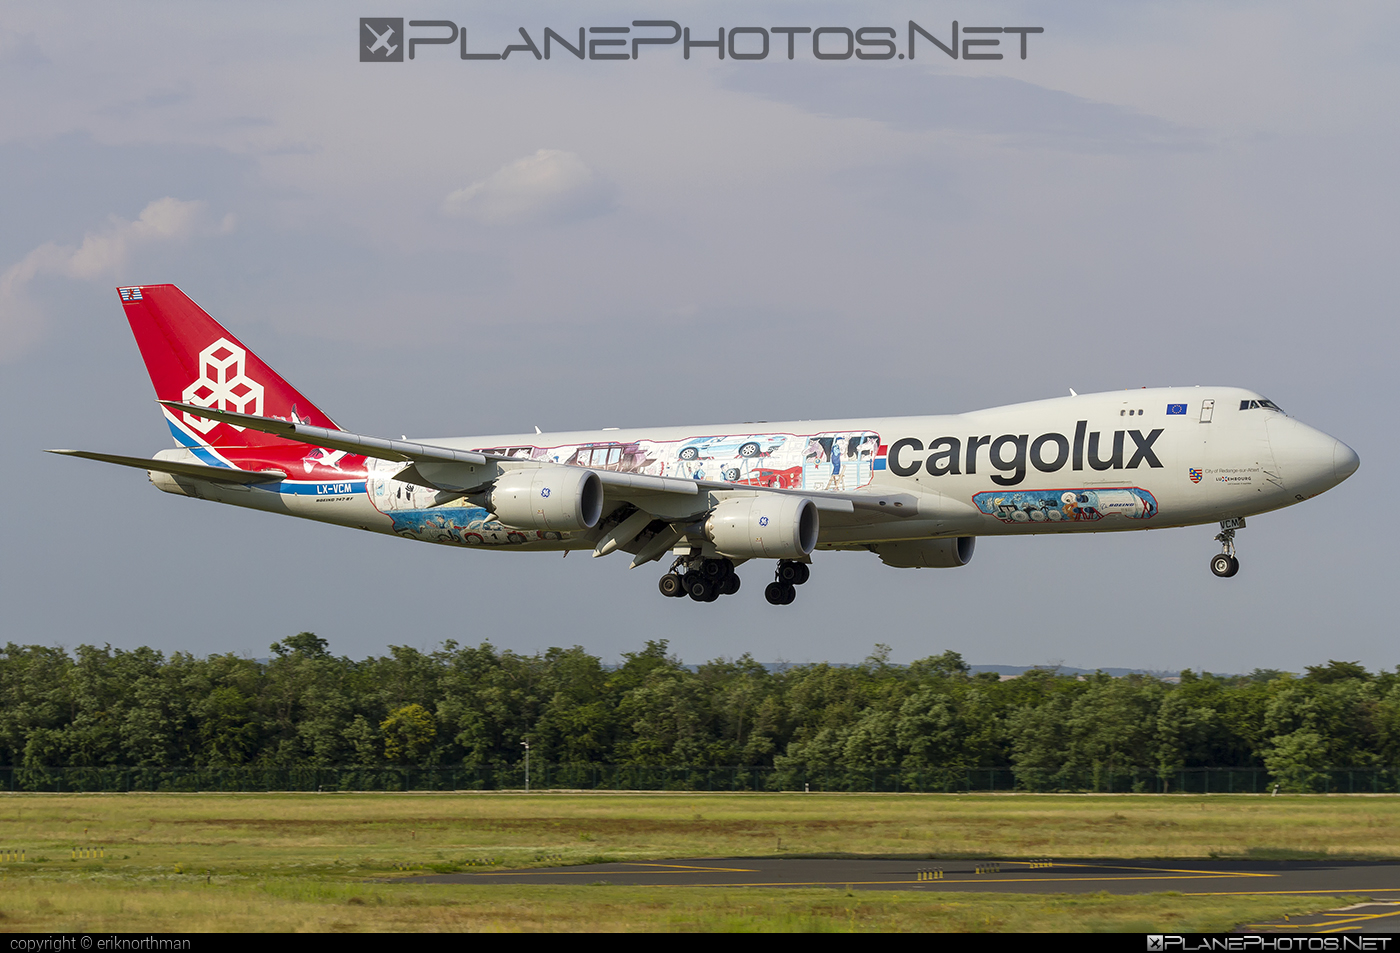 Boeing 747-8F - LX-VCM operated by Cargolux Airlines International #b747 #b747f #b747freighter #boeing #boeing747 #cargolux #jumbo